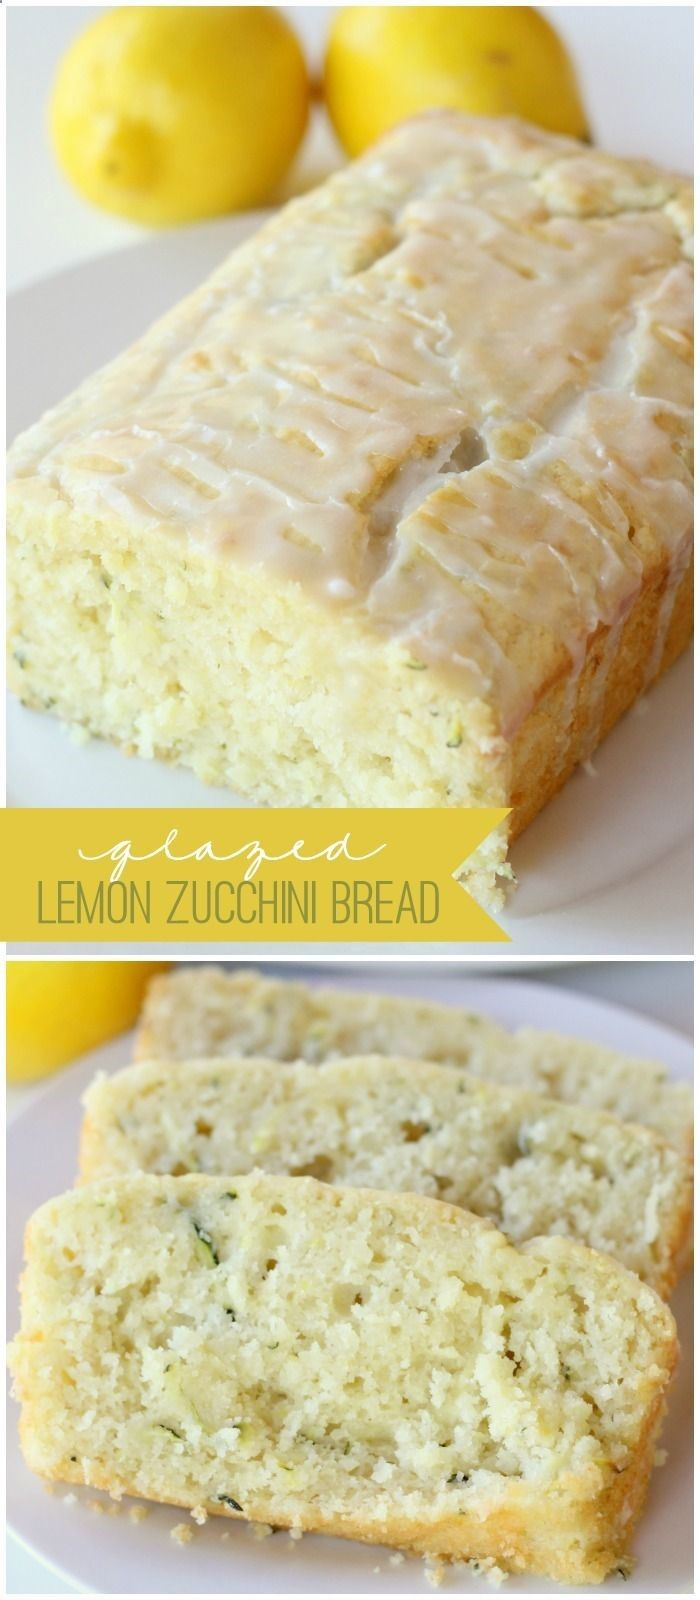 Glazed Lemon Zucchini Bread recipe | FOODIEZ-eatzFOODIEZ-eatz